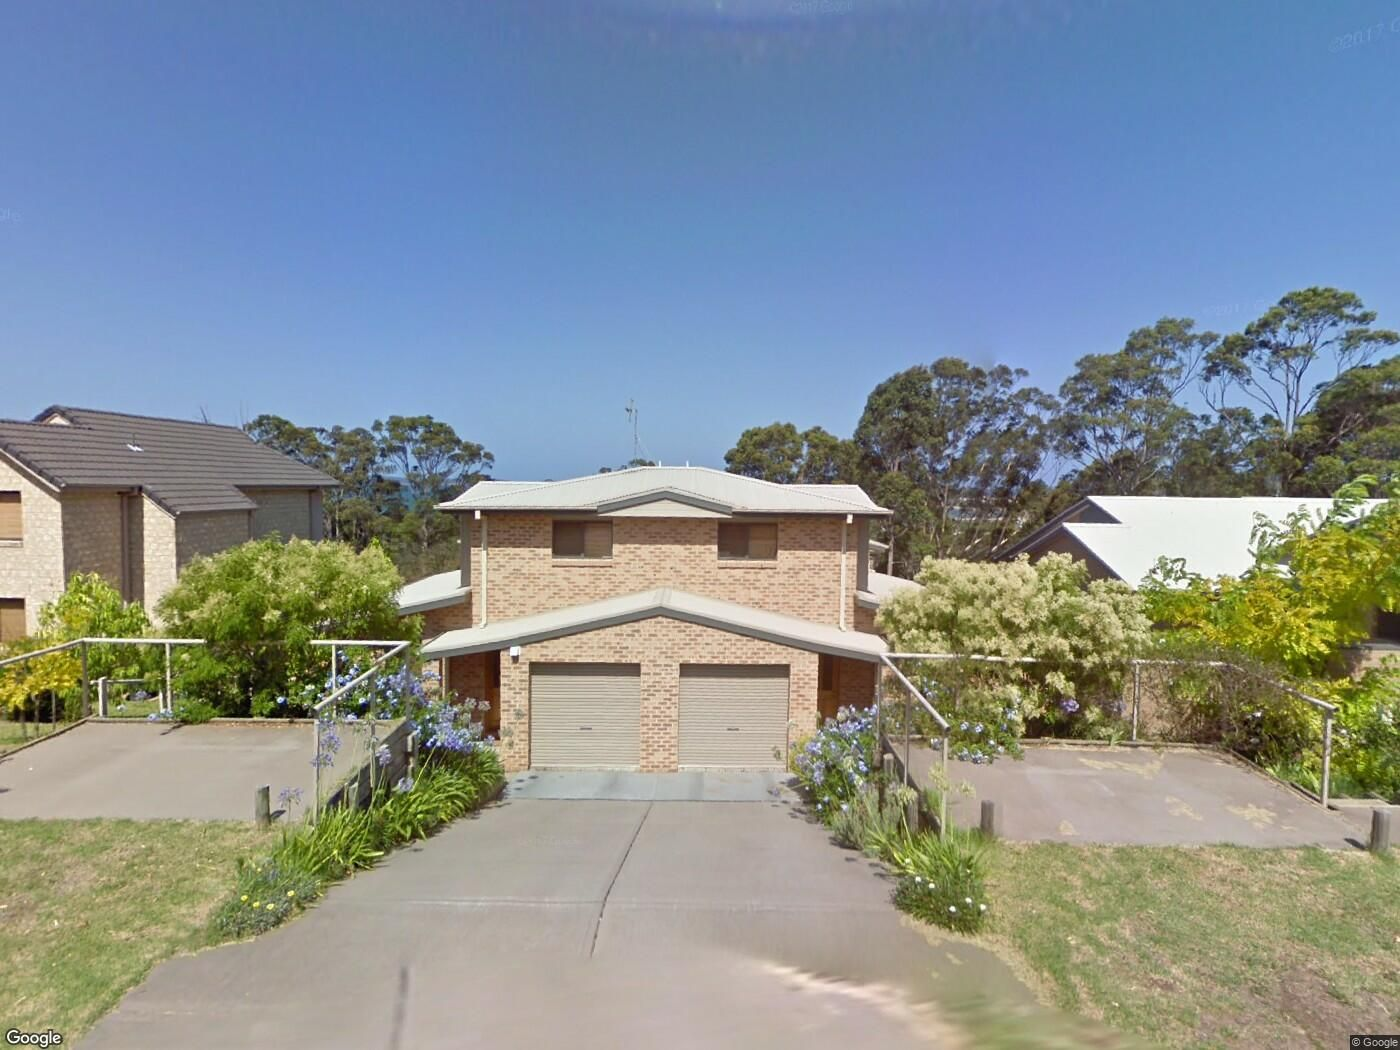 14a SANCTUARY PLACE, Catalina NSW 2536, Image 0